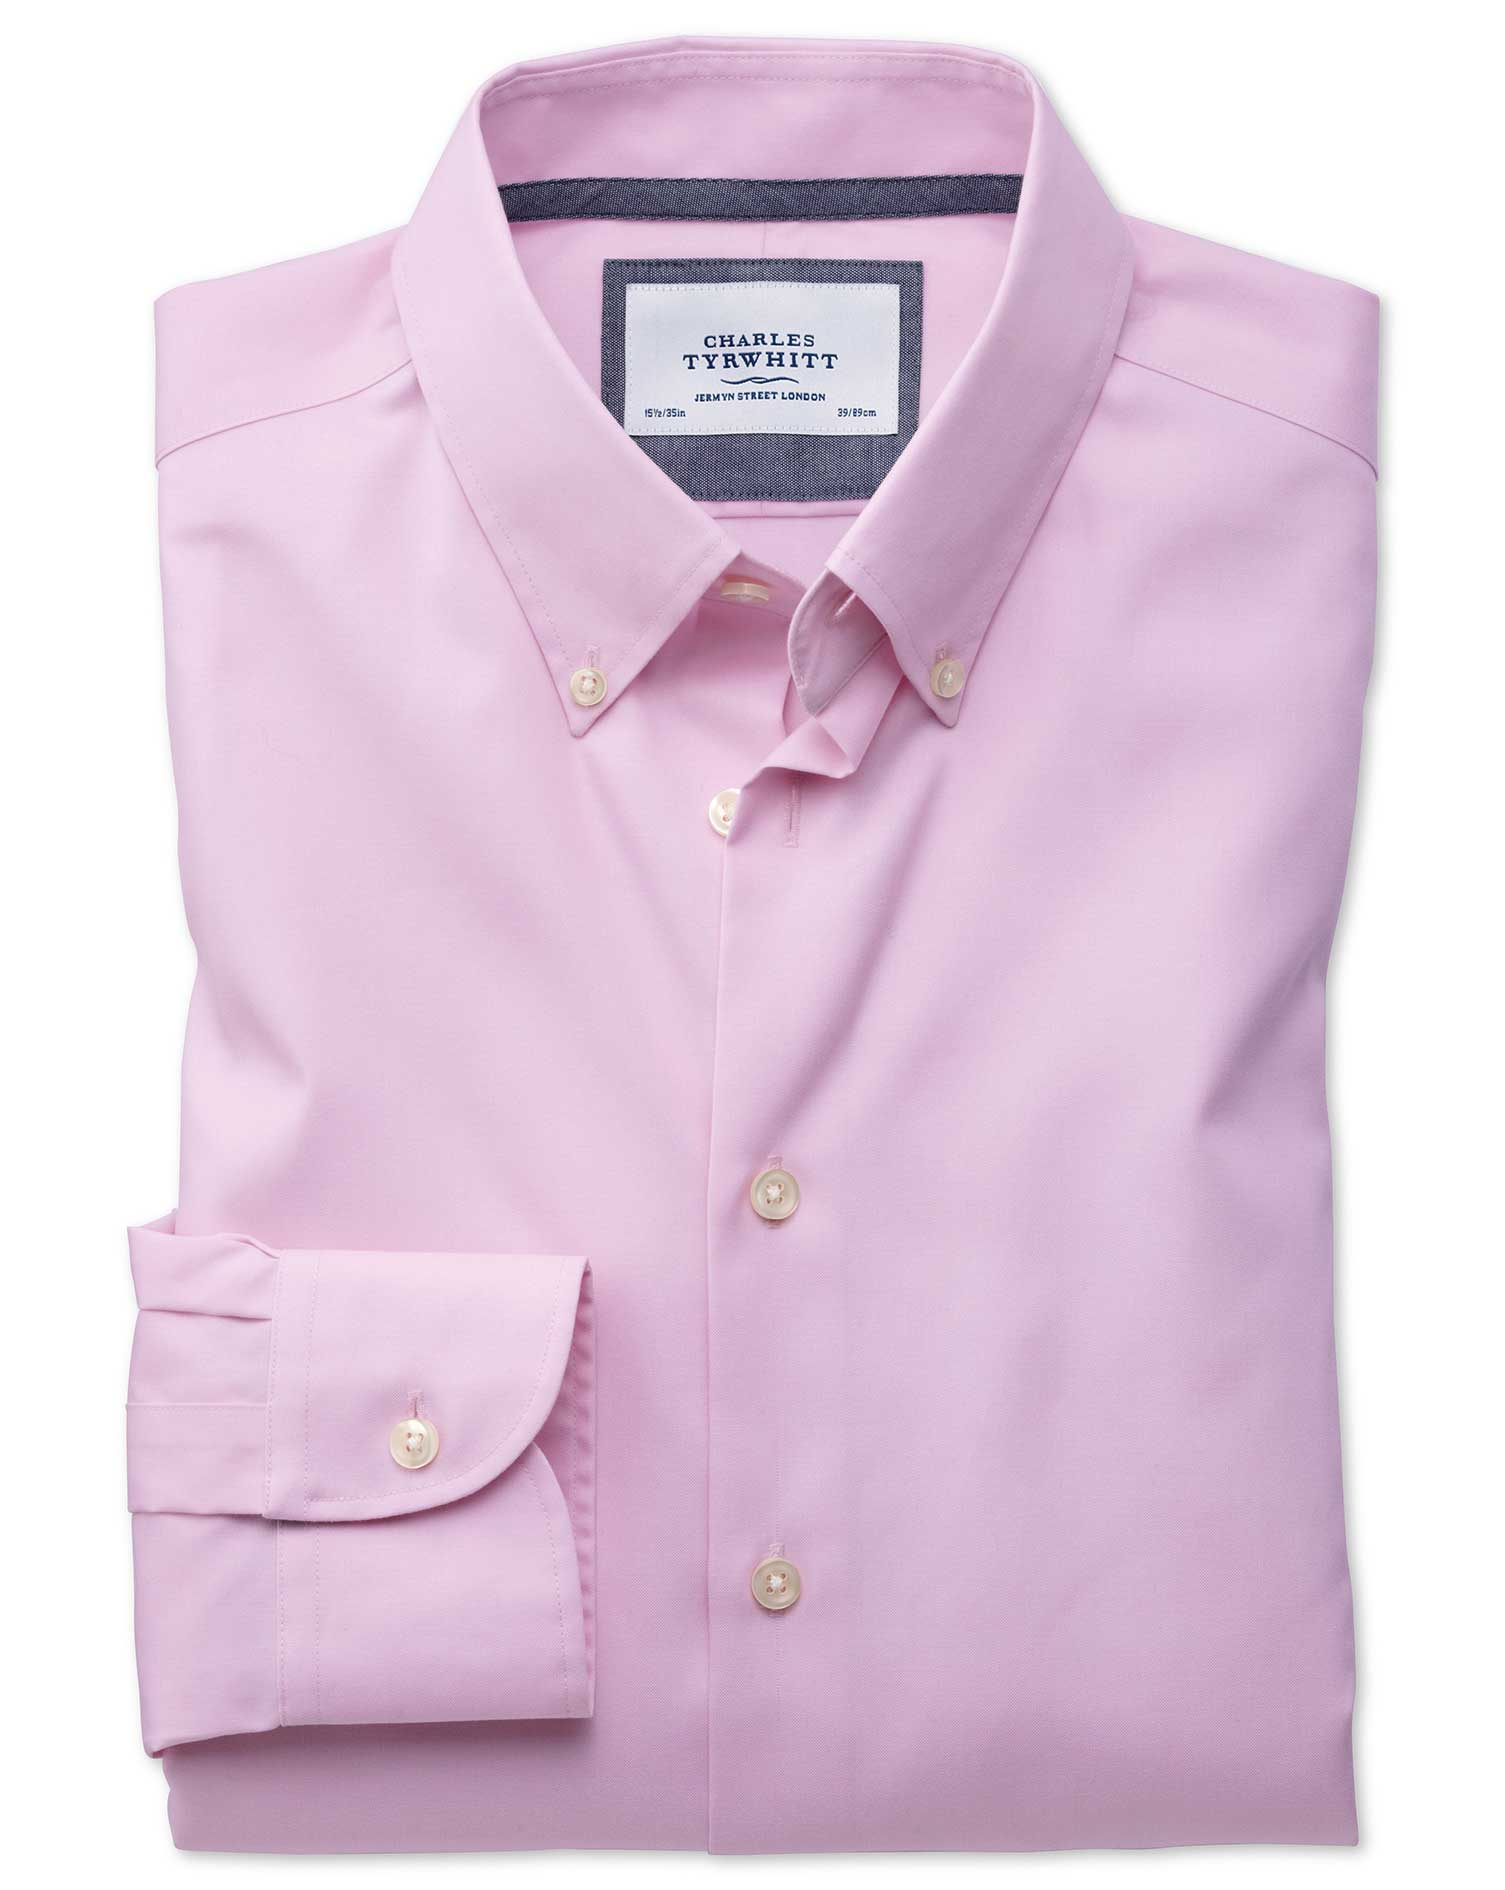 Extra Slim Fit Button-Down Business Casual Non-Iron Light Pink Cotton Formal Shirt Single Cuff Size